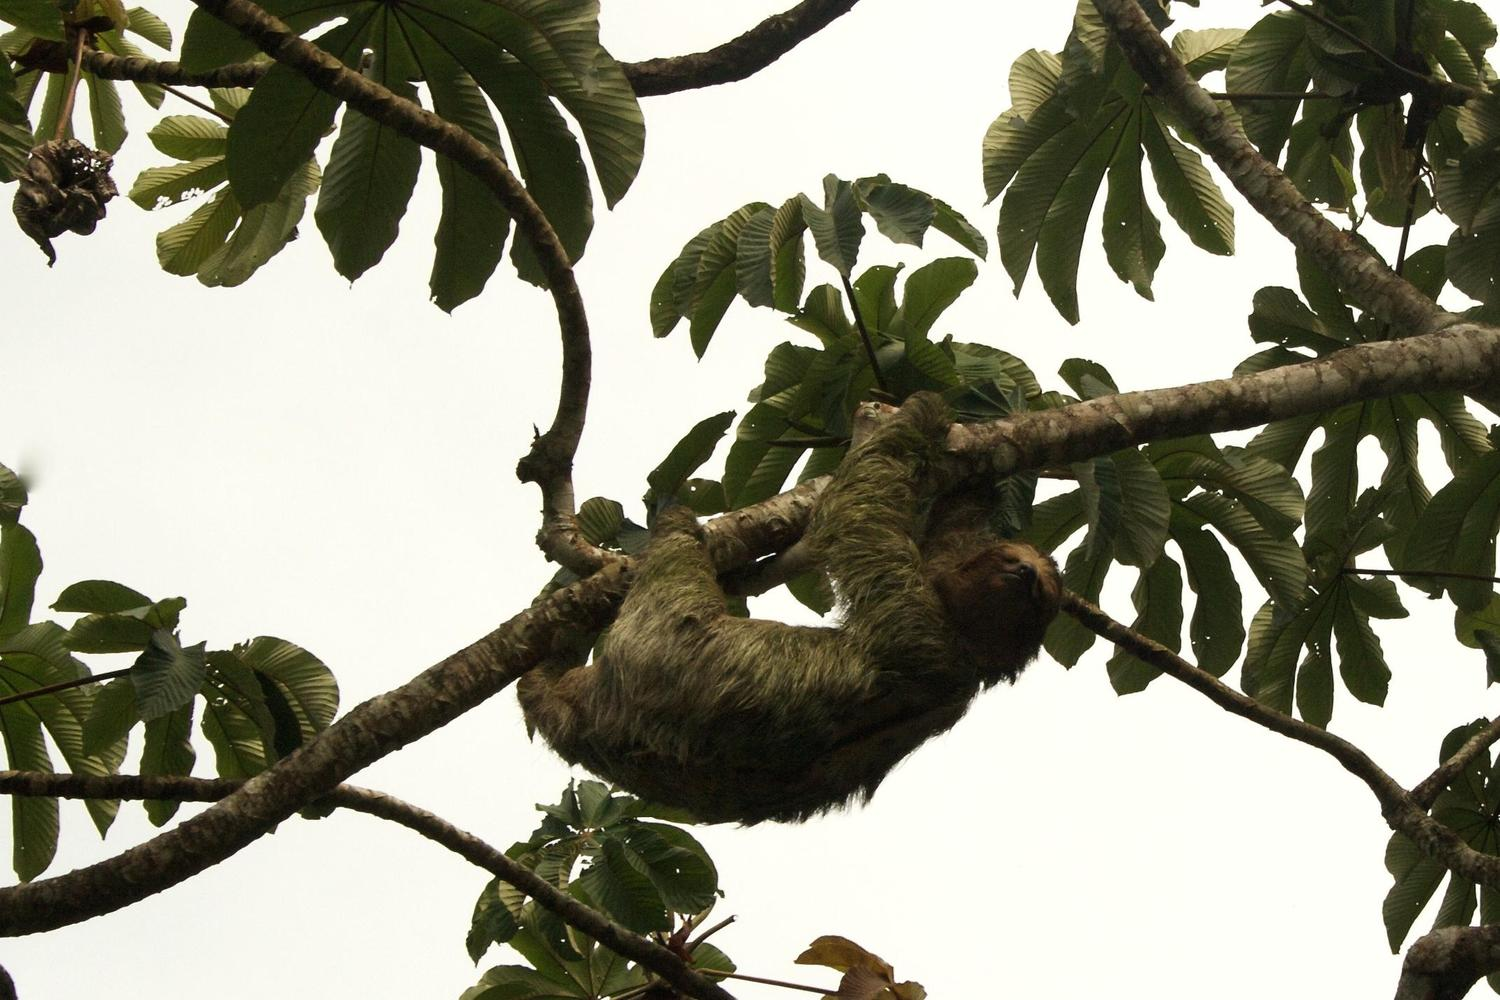 Three-toed sloth making its way very slowly through the canopy